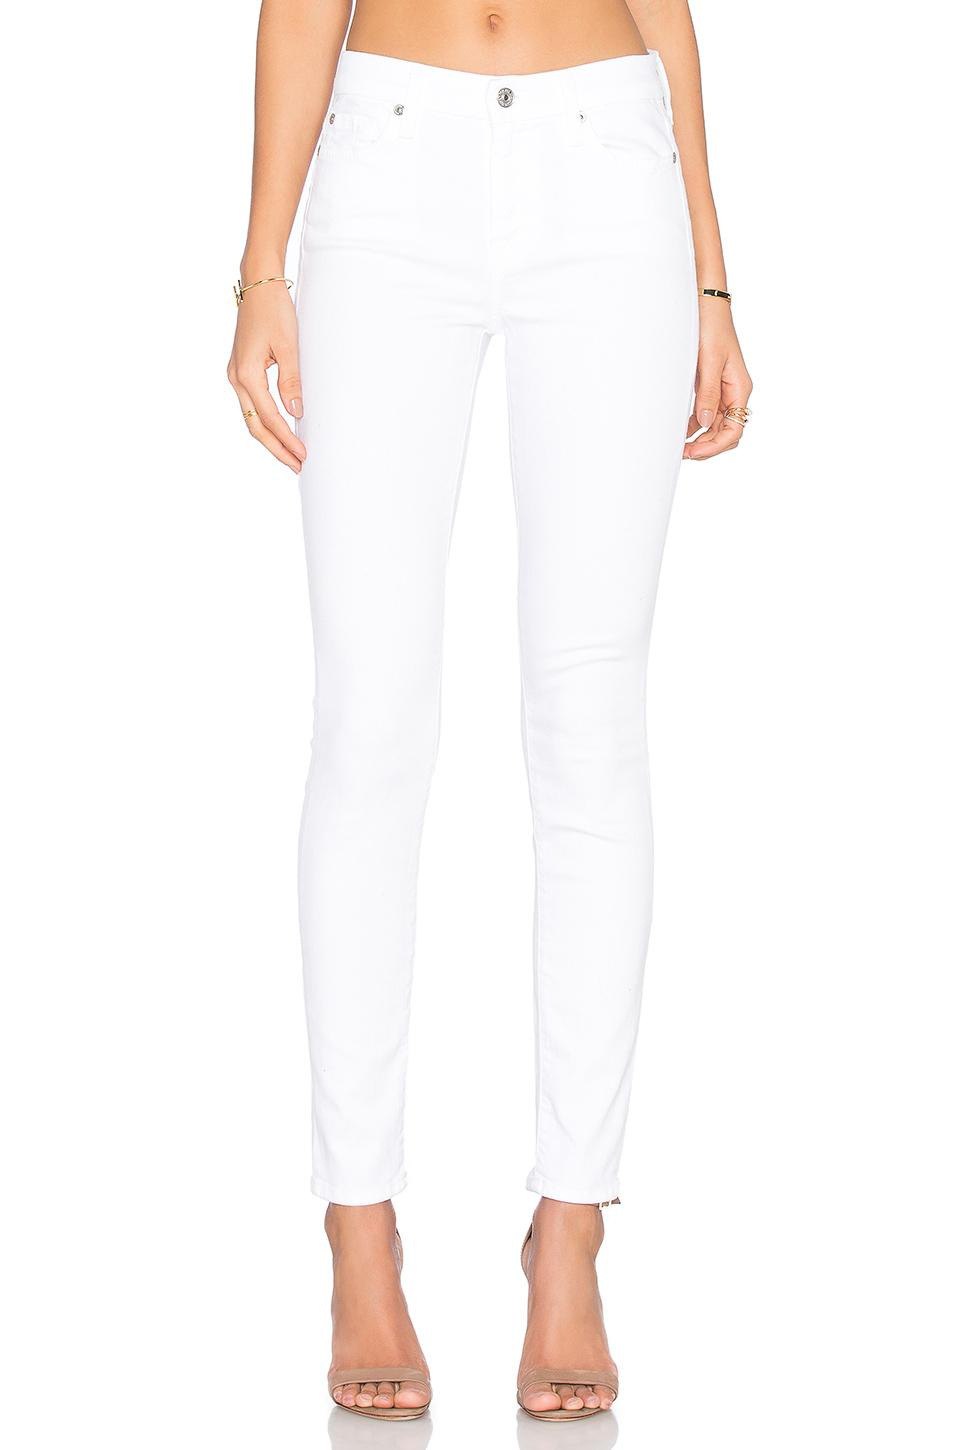 7 For All Mankind The Skinny Ankle Jeans, White